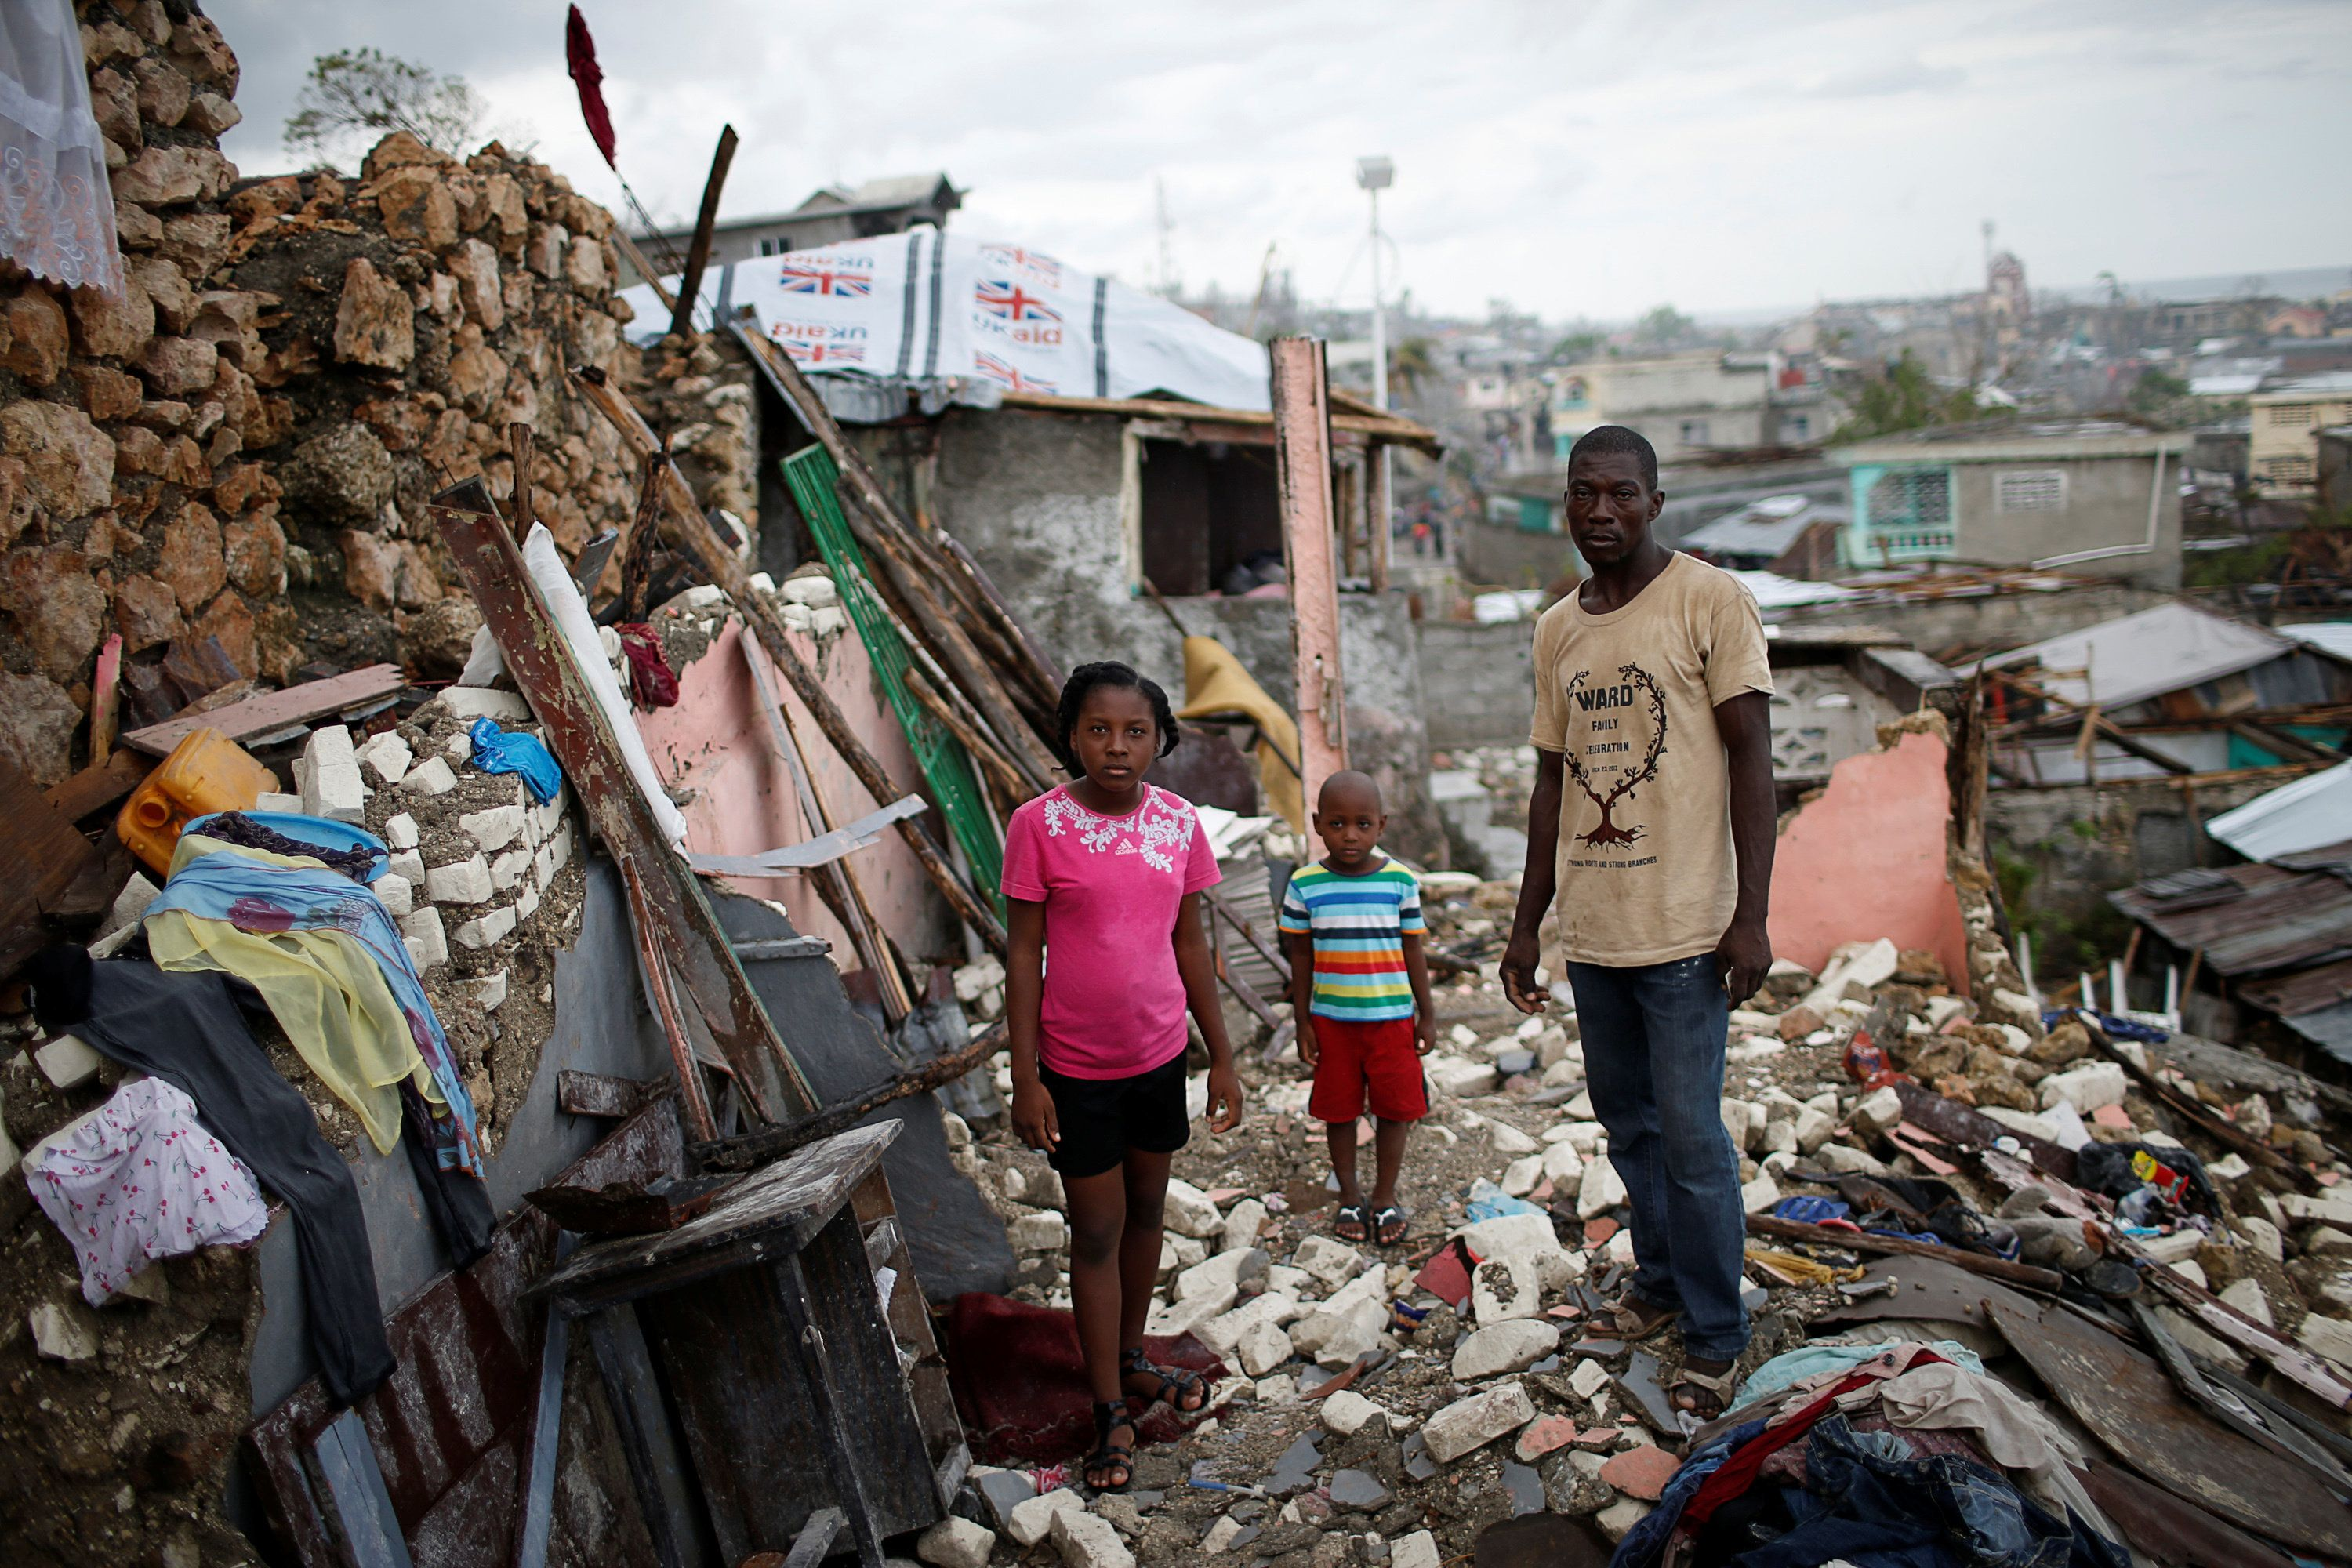 "Prenille Nord, 42, poses for a photograph with his children Darline and Kervins among the debris of their destroyed house after Hurricane Matthew hit Jeremie, Haiti, October 17, 2016. ""My house is completely destroyed, I have nothing left. Now we are homeless and I'm currently living in a shelter with my family but that makes no sense to me. I'm scared of the cholera. People around us are becoming sick, I really need help, so far we have not received any aid,"" said Nord. REUTERS/Carlos Garcia Rawlins          SEARCH ""HAITI PORTRAITS"" FOR THIS STORY. SEARCH ""WIDER IMAGE"" FOR ALL STORIES."